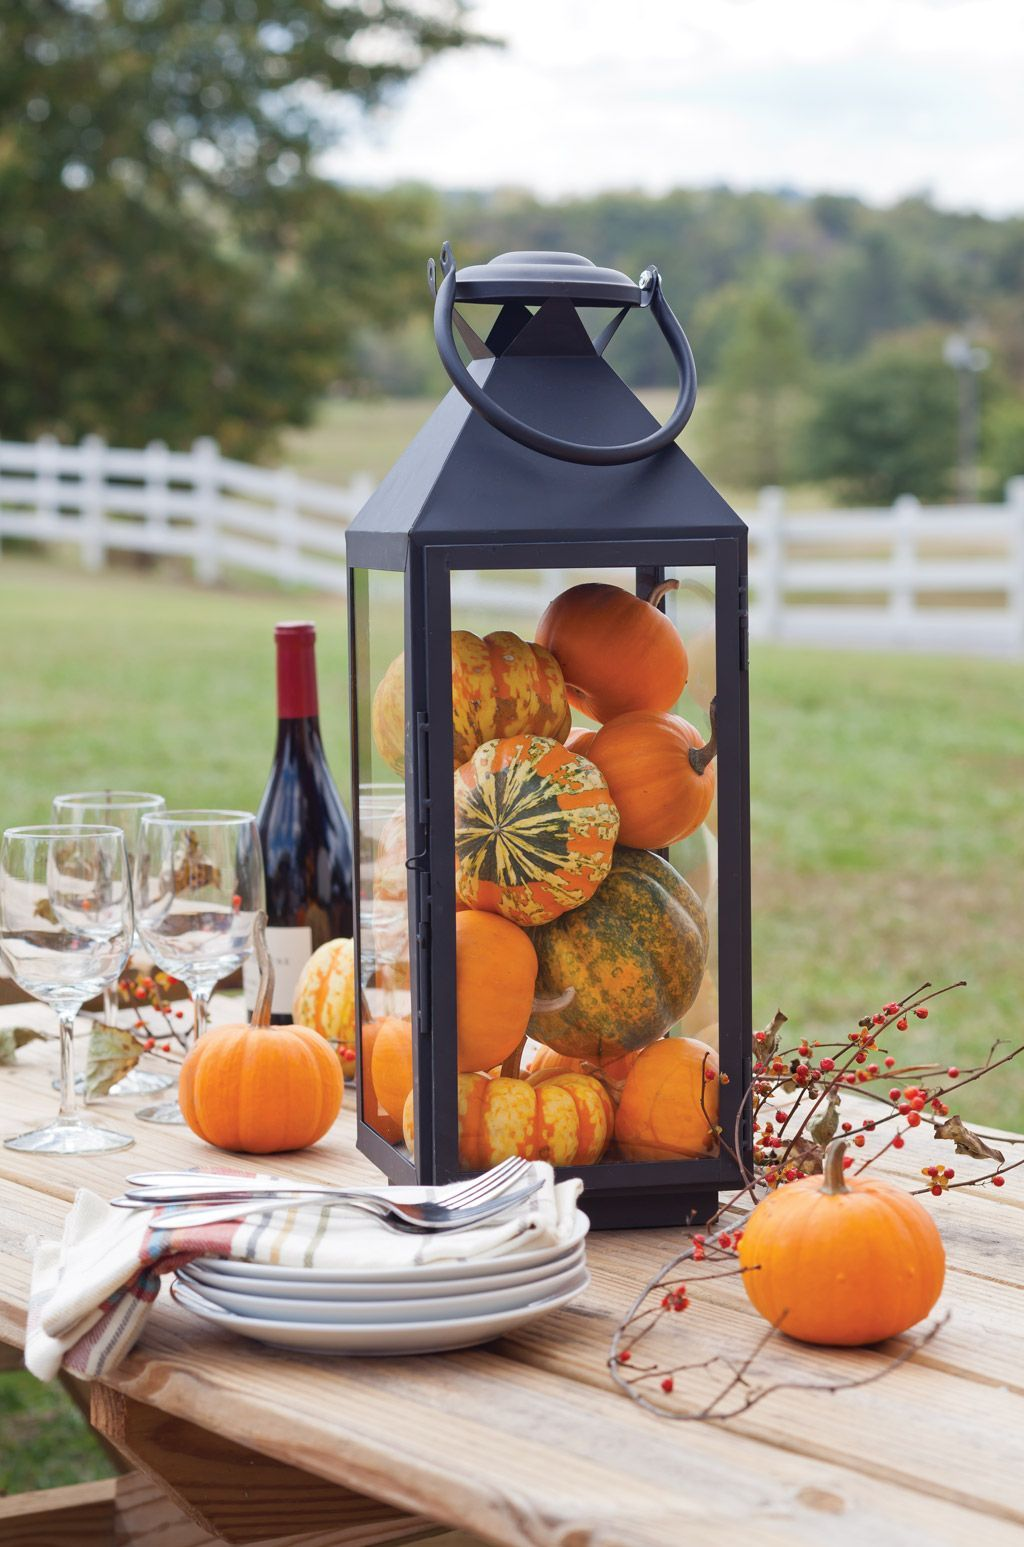 68 Diy Fall Decor Ideas For Indoor And Outdoor